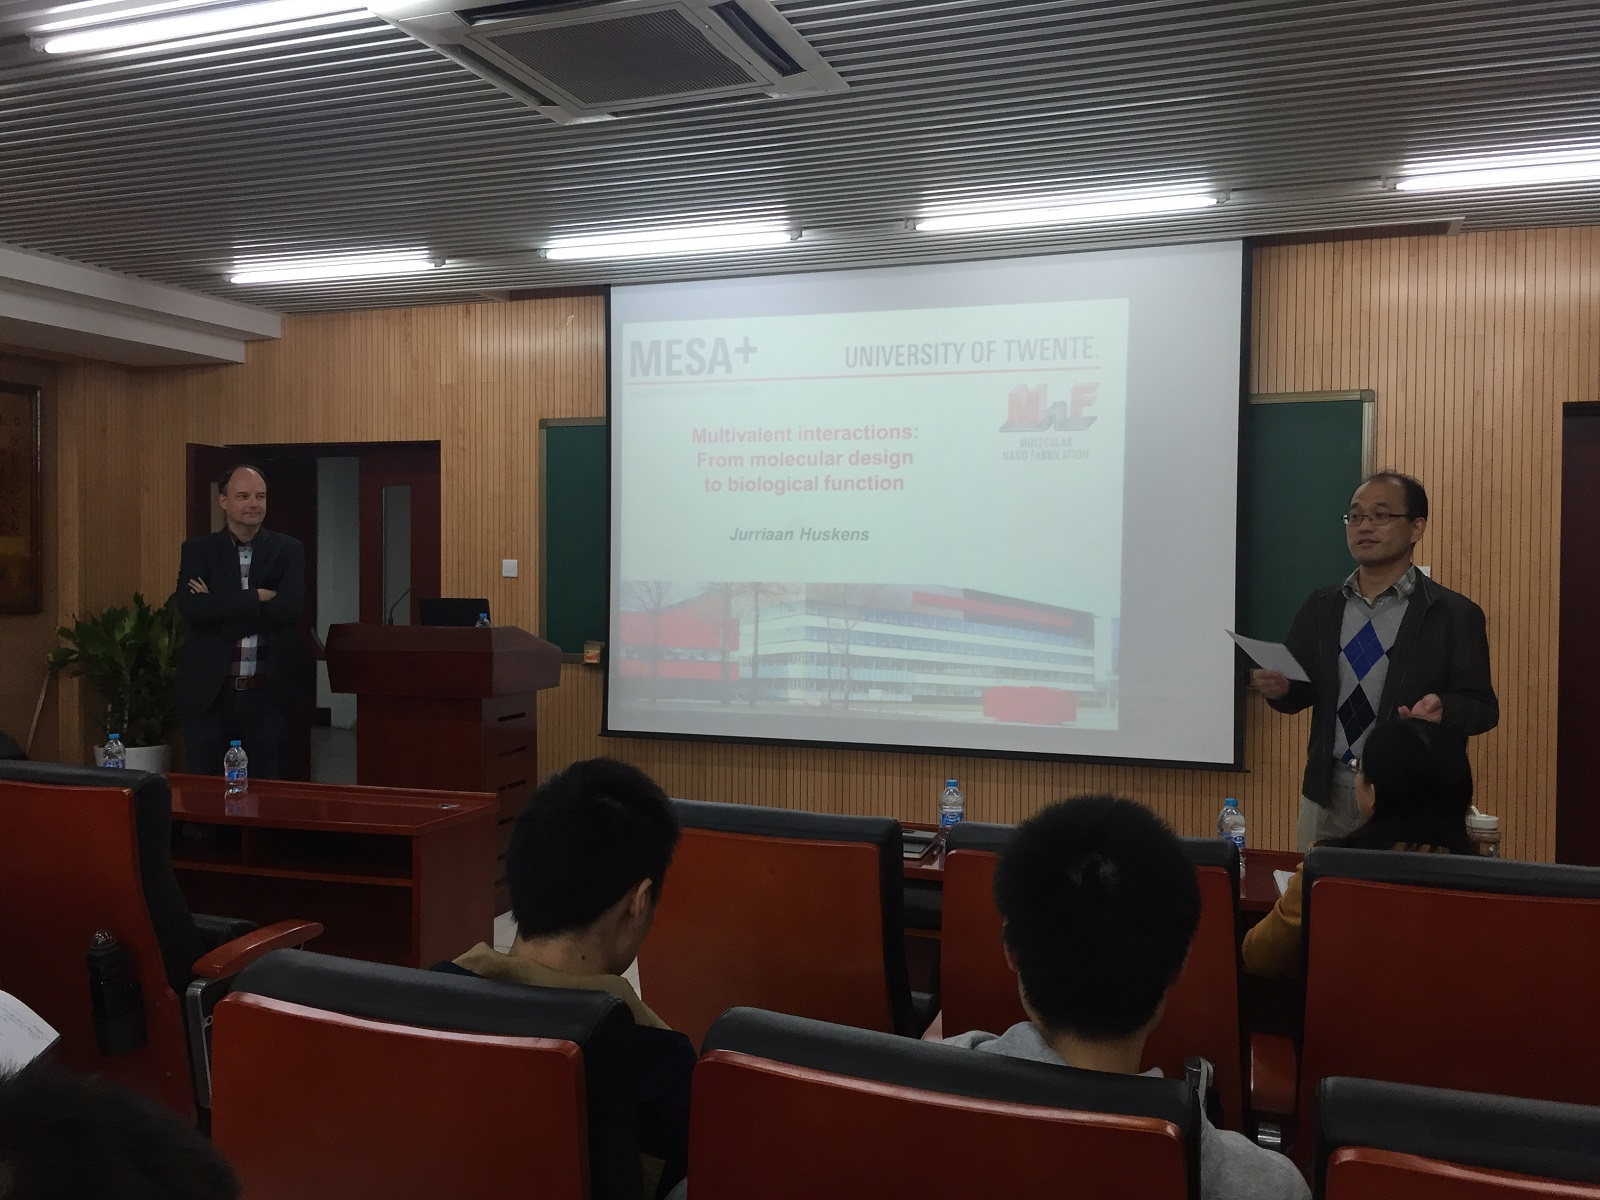 Prof. Jurriaan Huskens visited Tsinghua University and gave a lecture